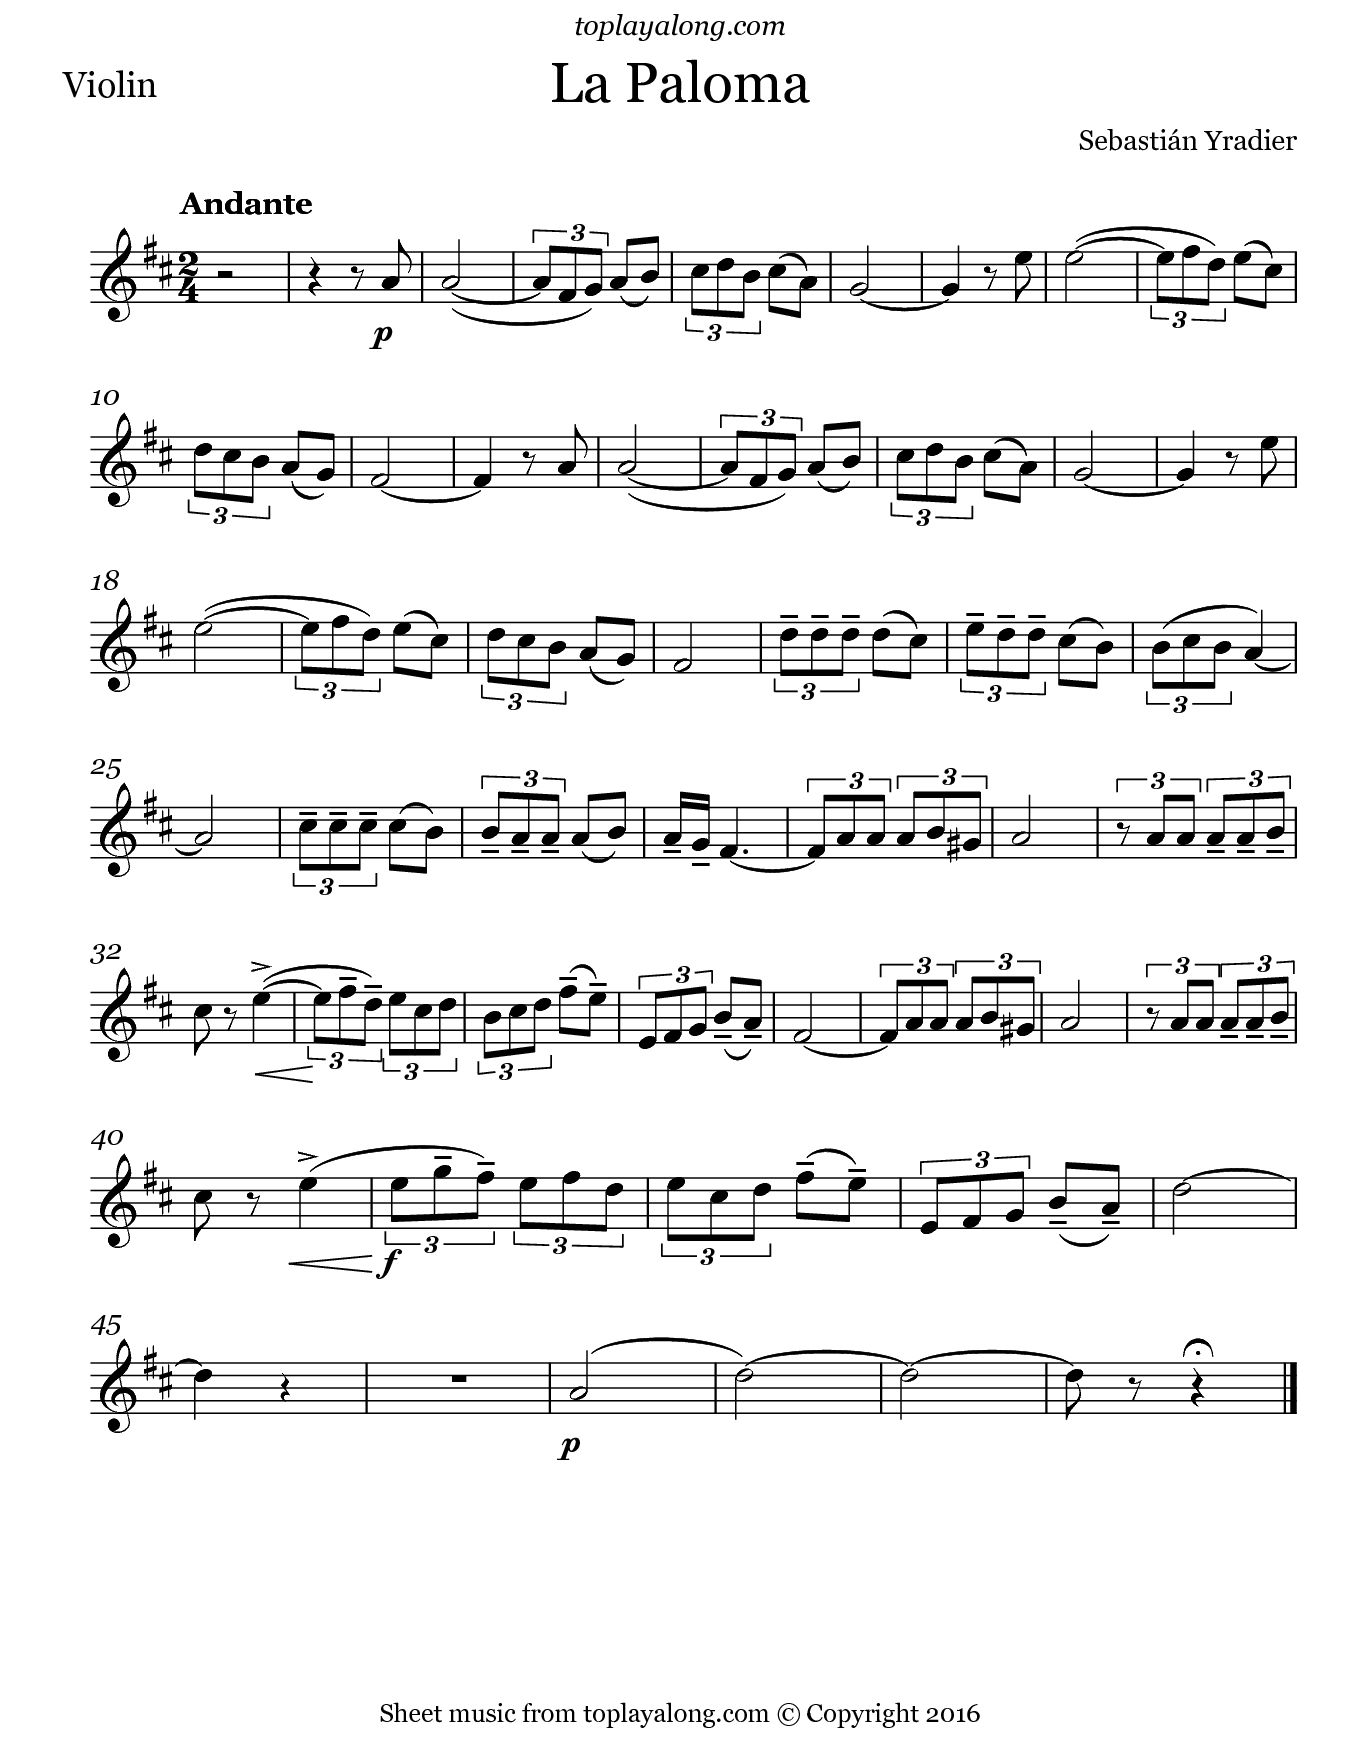 La Paloma by Yradier. Sheet music for Violin, page 1.